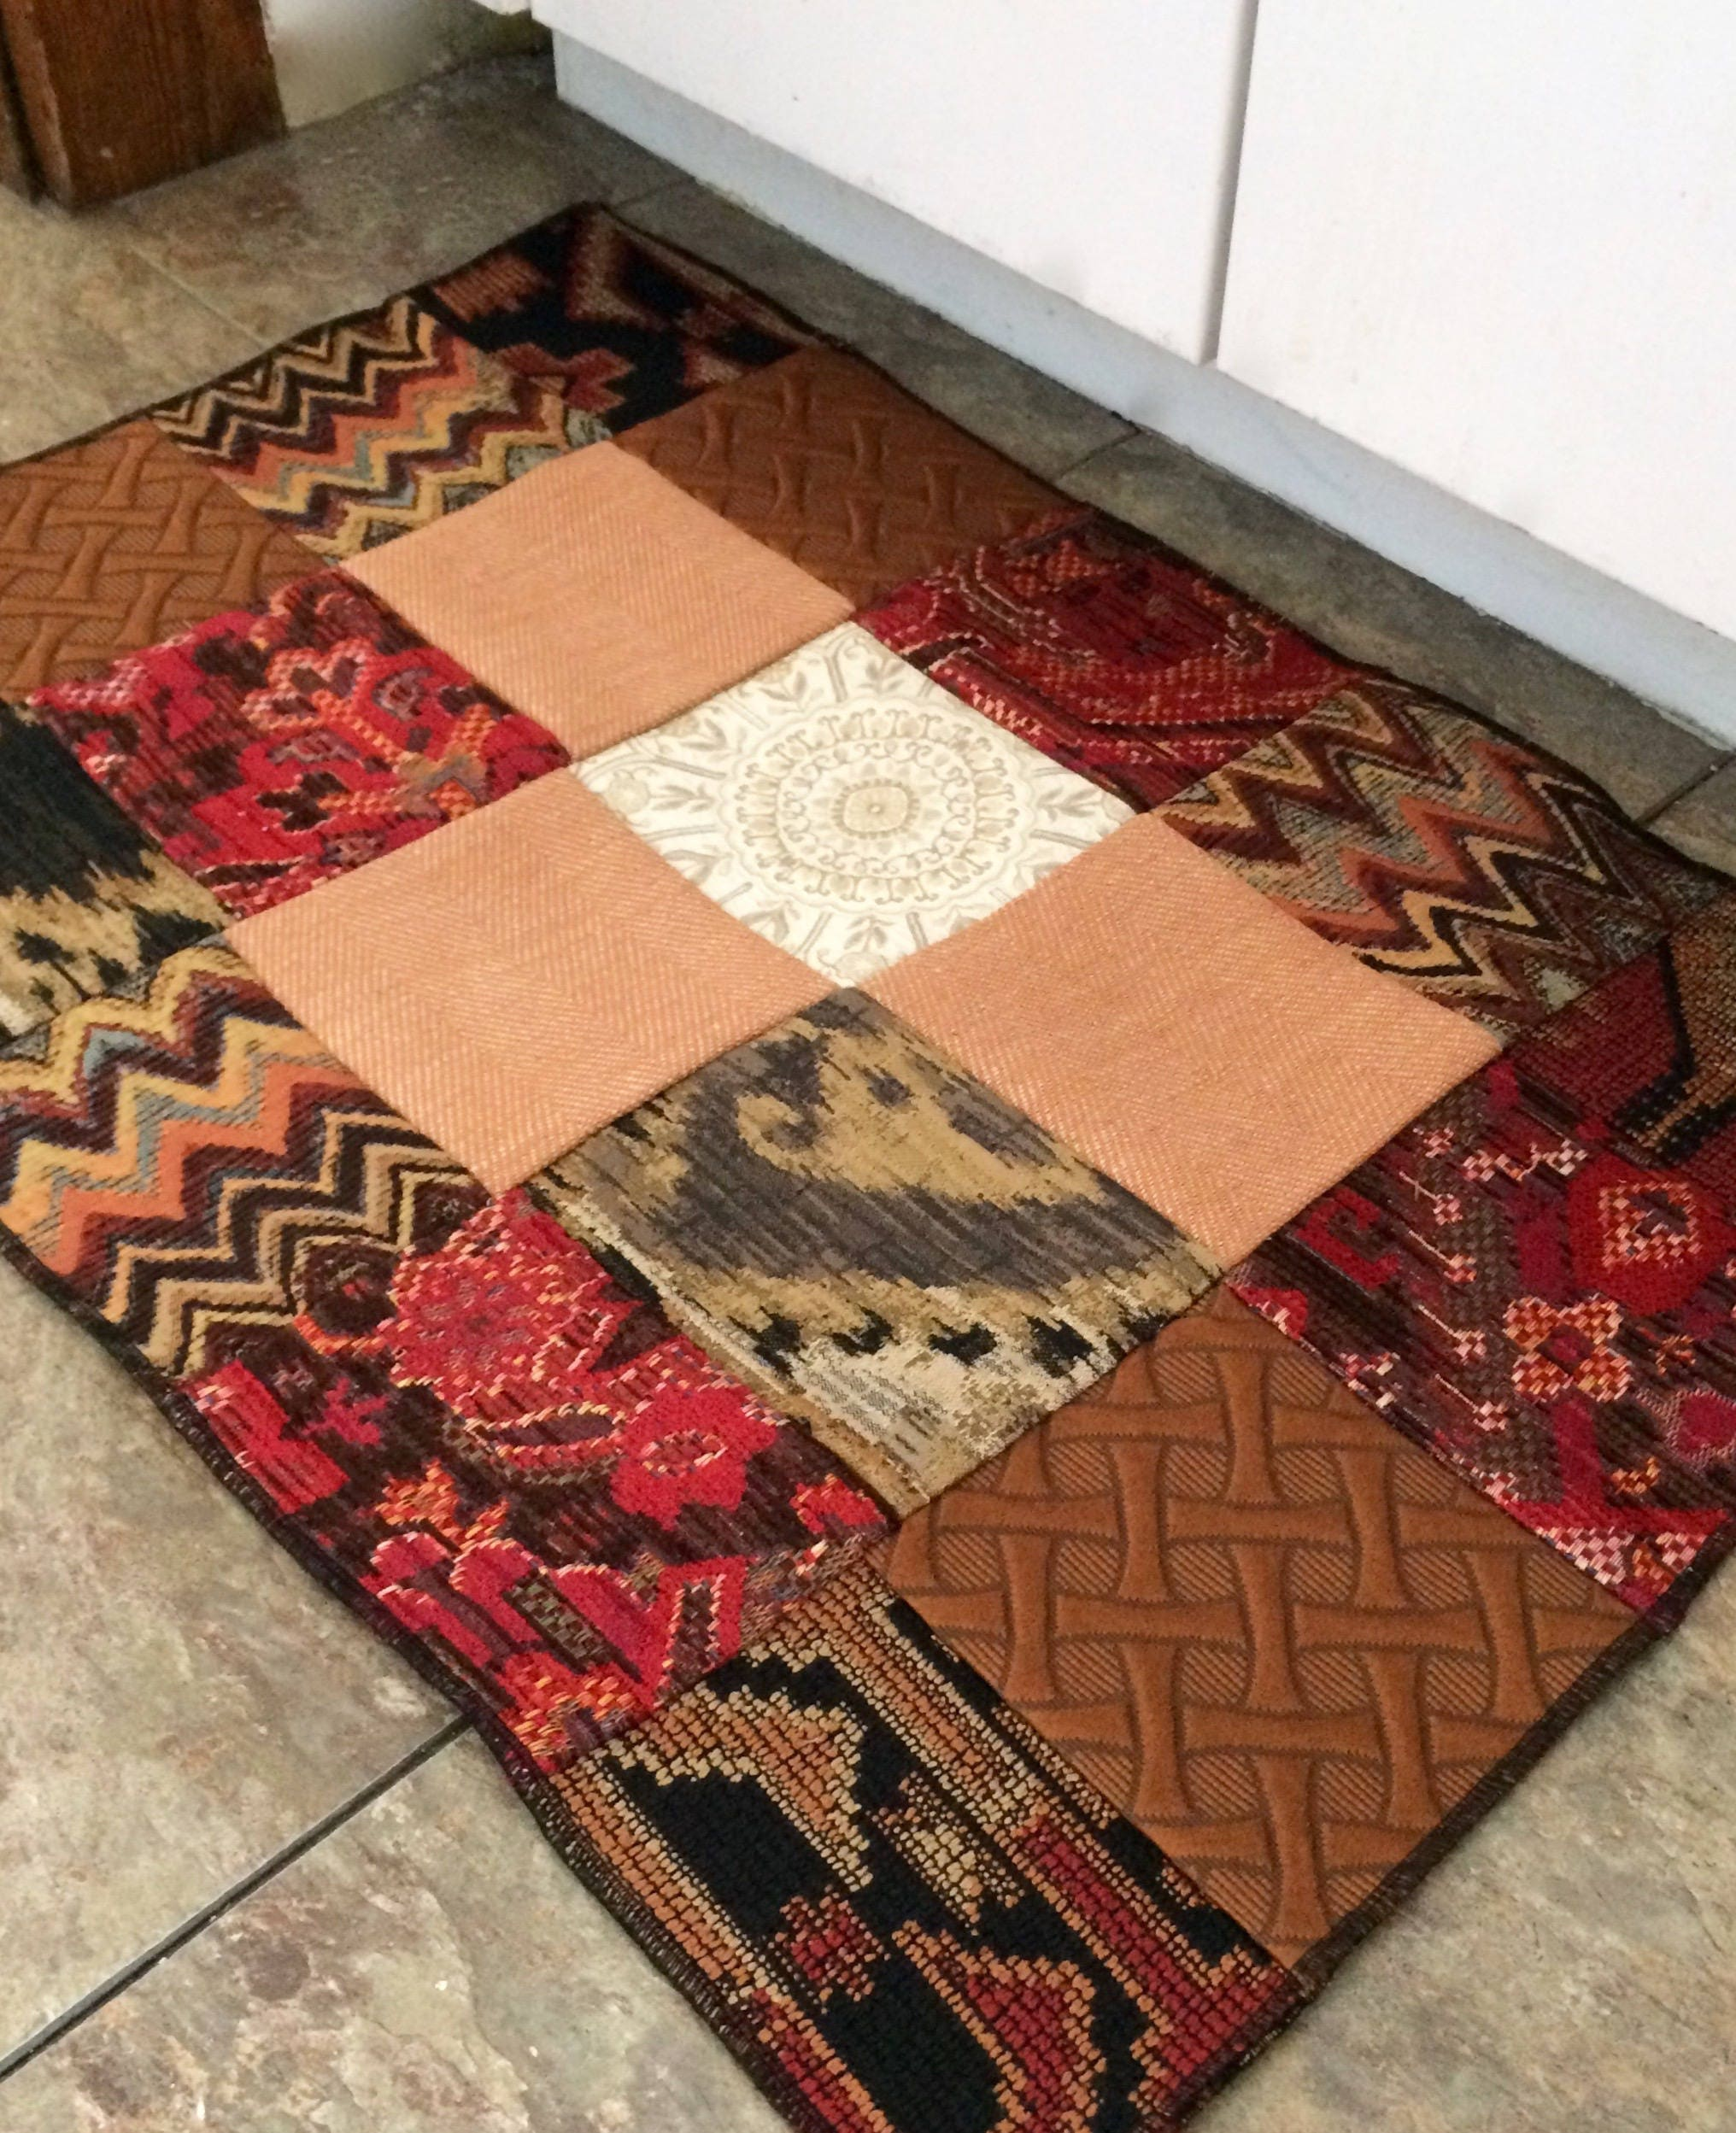 Moroccan Inspired Patchwork Rug